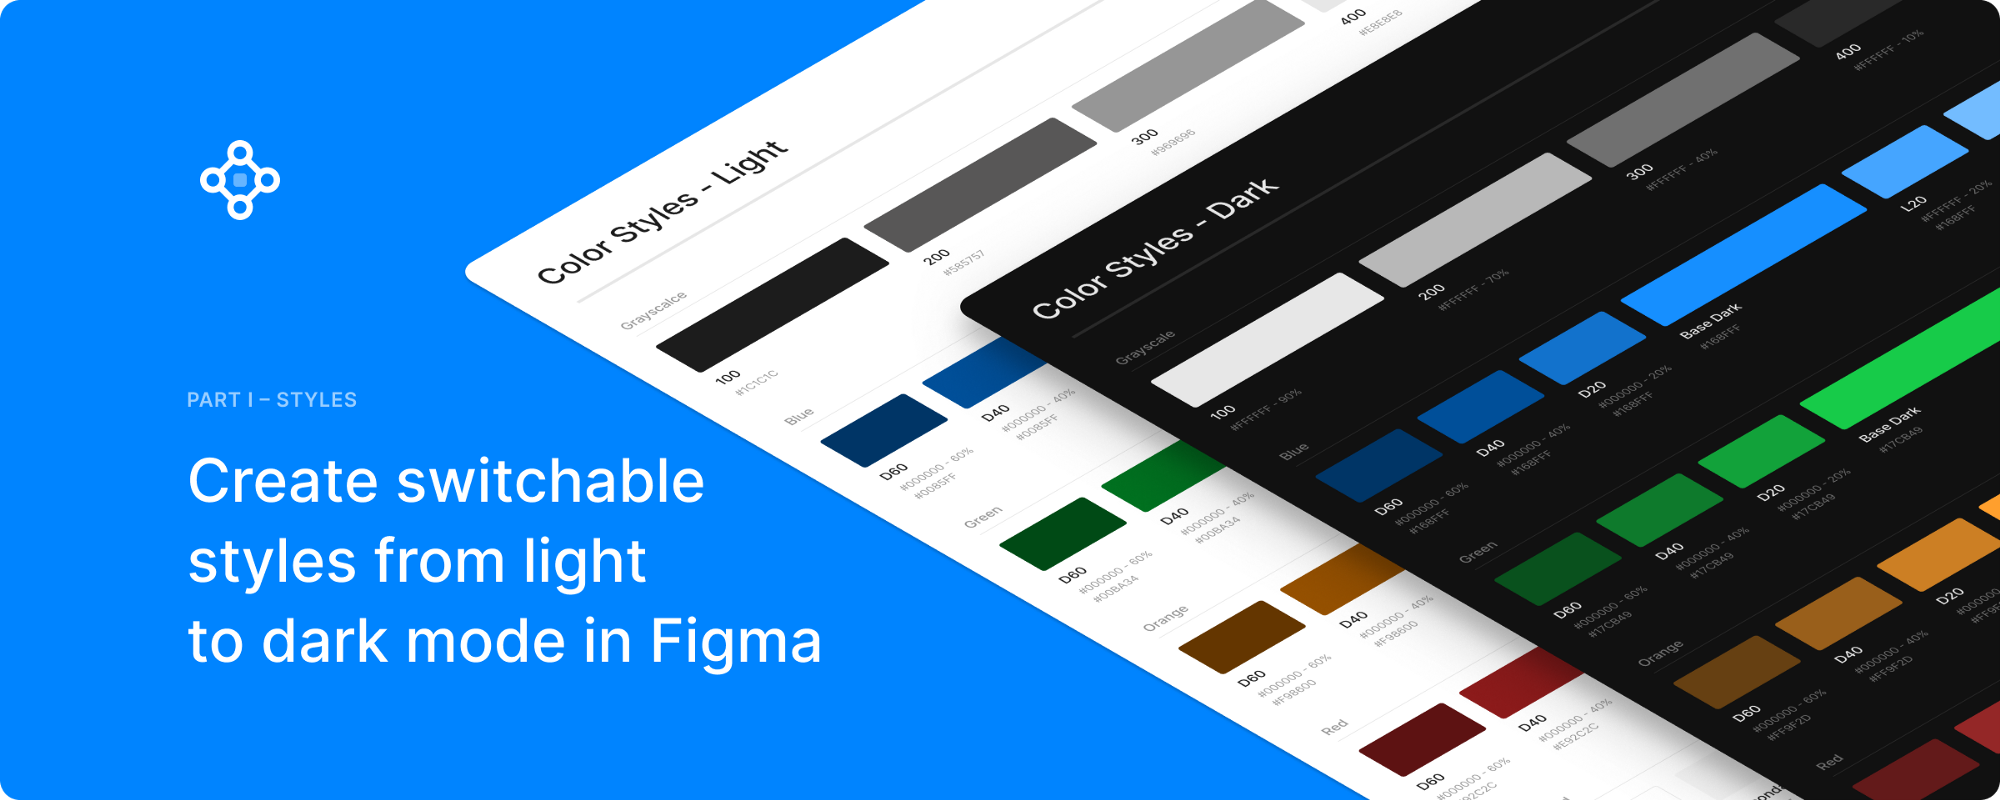 Create switchable styles from light to dark mode in Figma